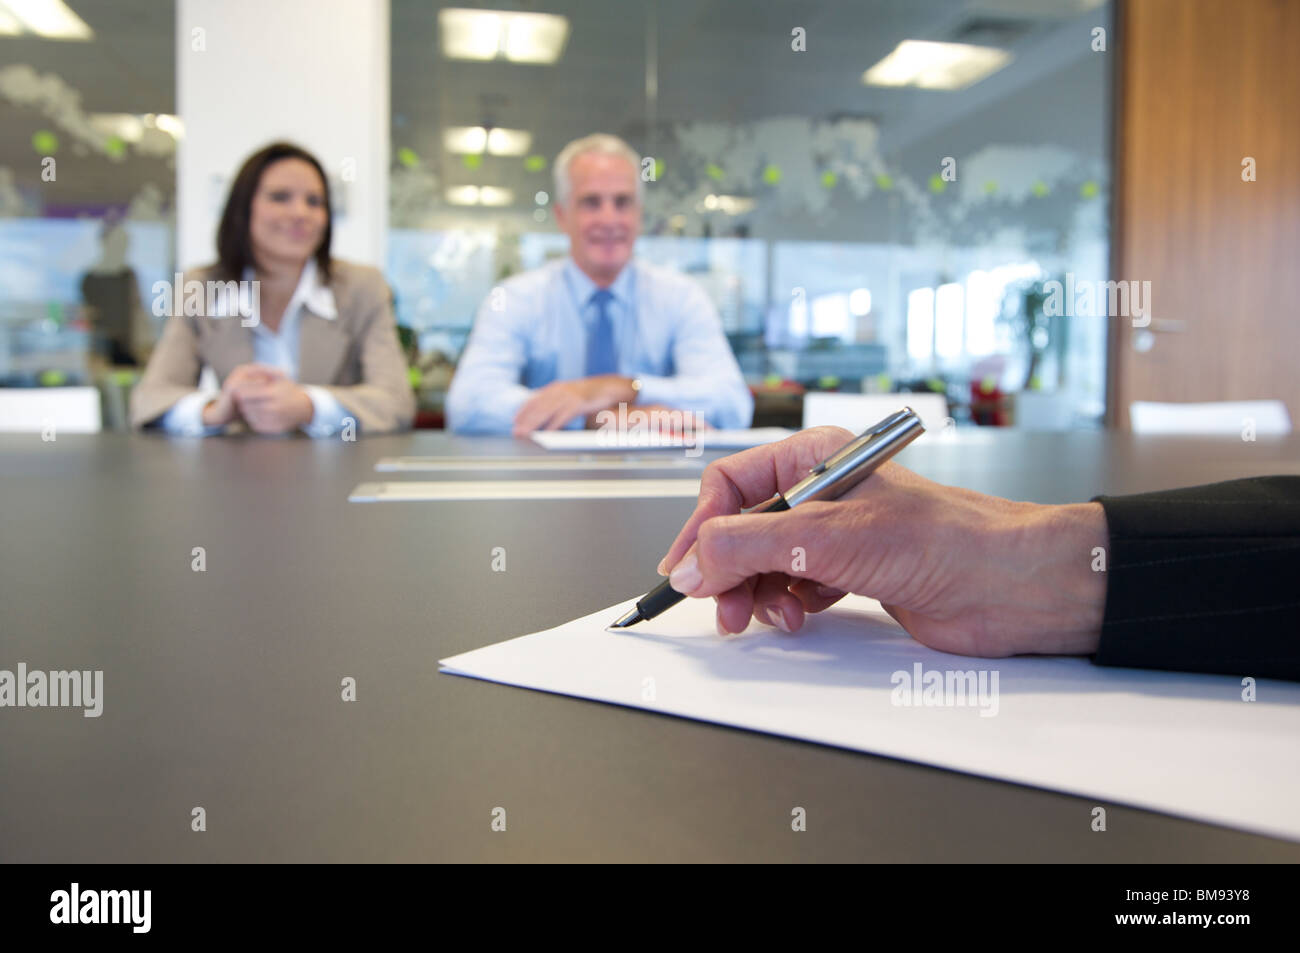 Hand and pen close up in a business meeting - Stock Image